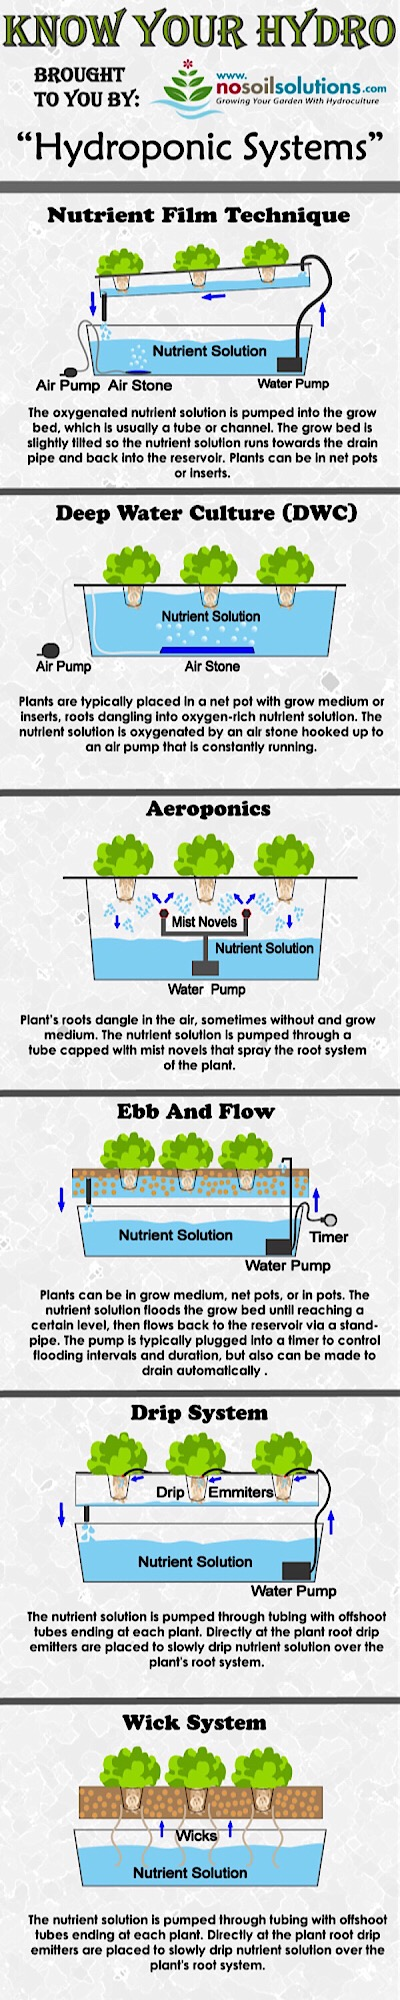 6 Different Types Of Hydroponic Systems infographic